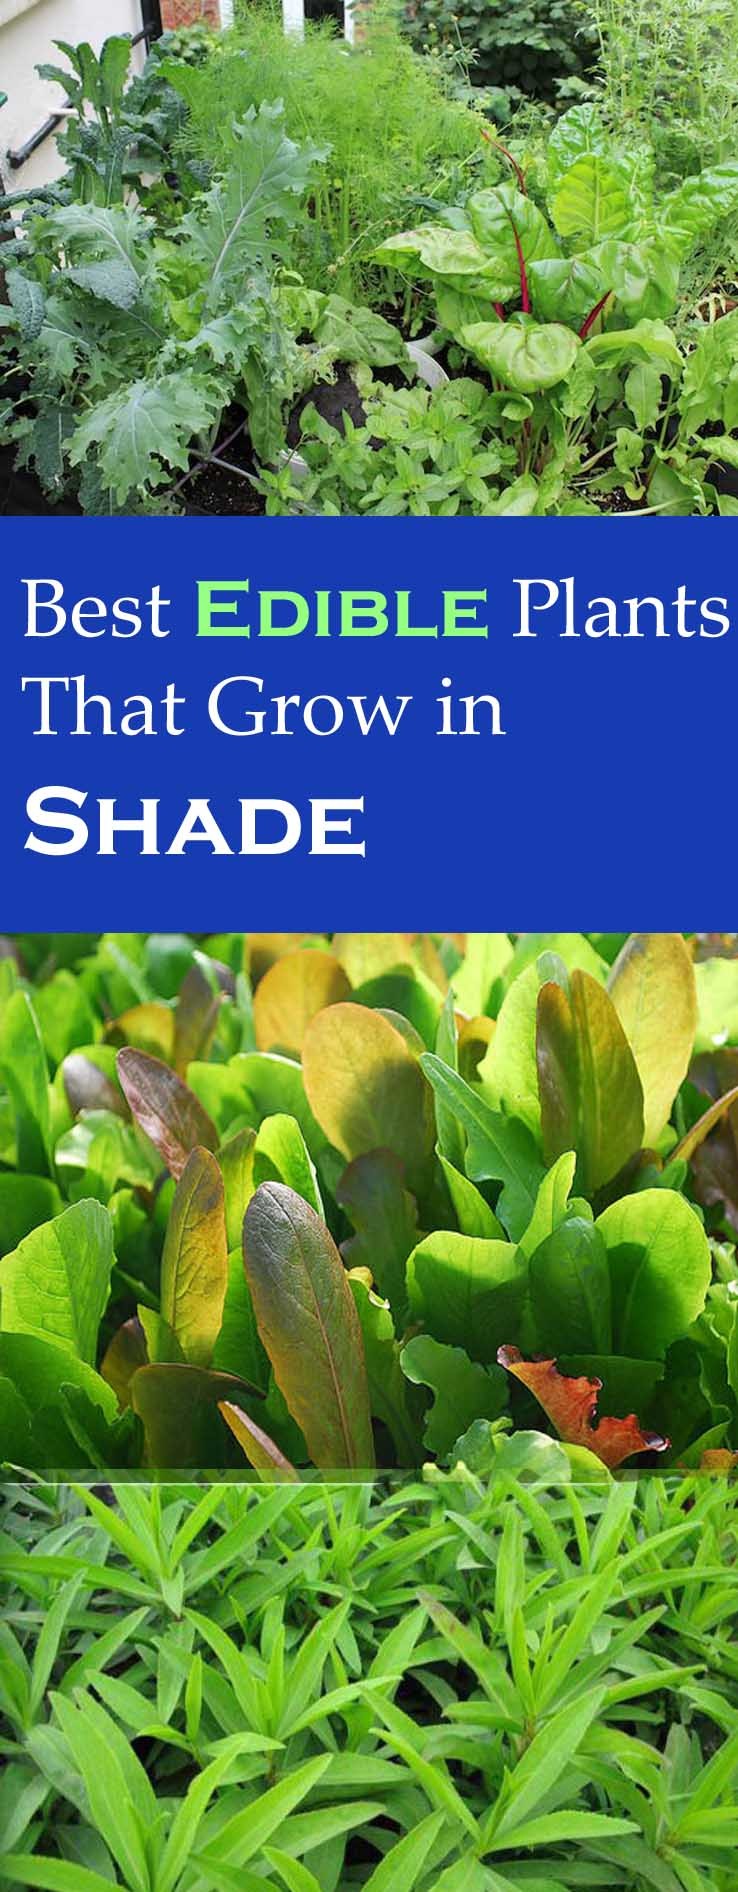 edible plants for shade